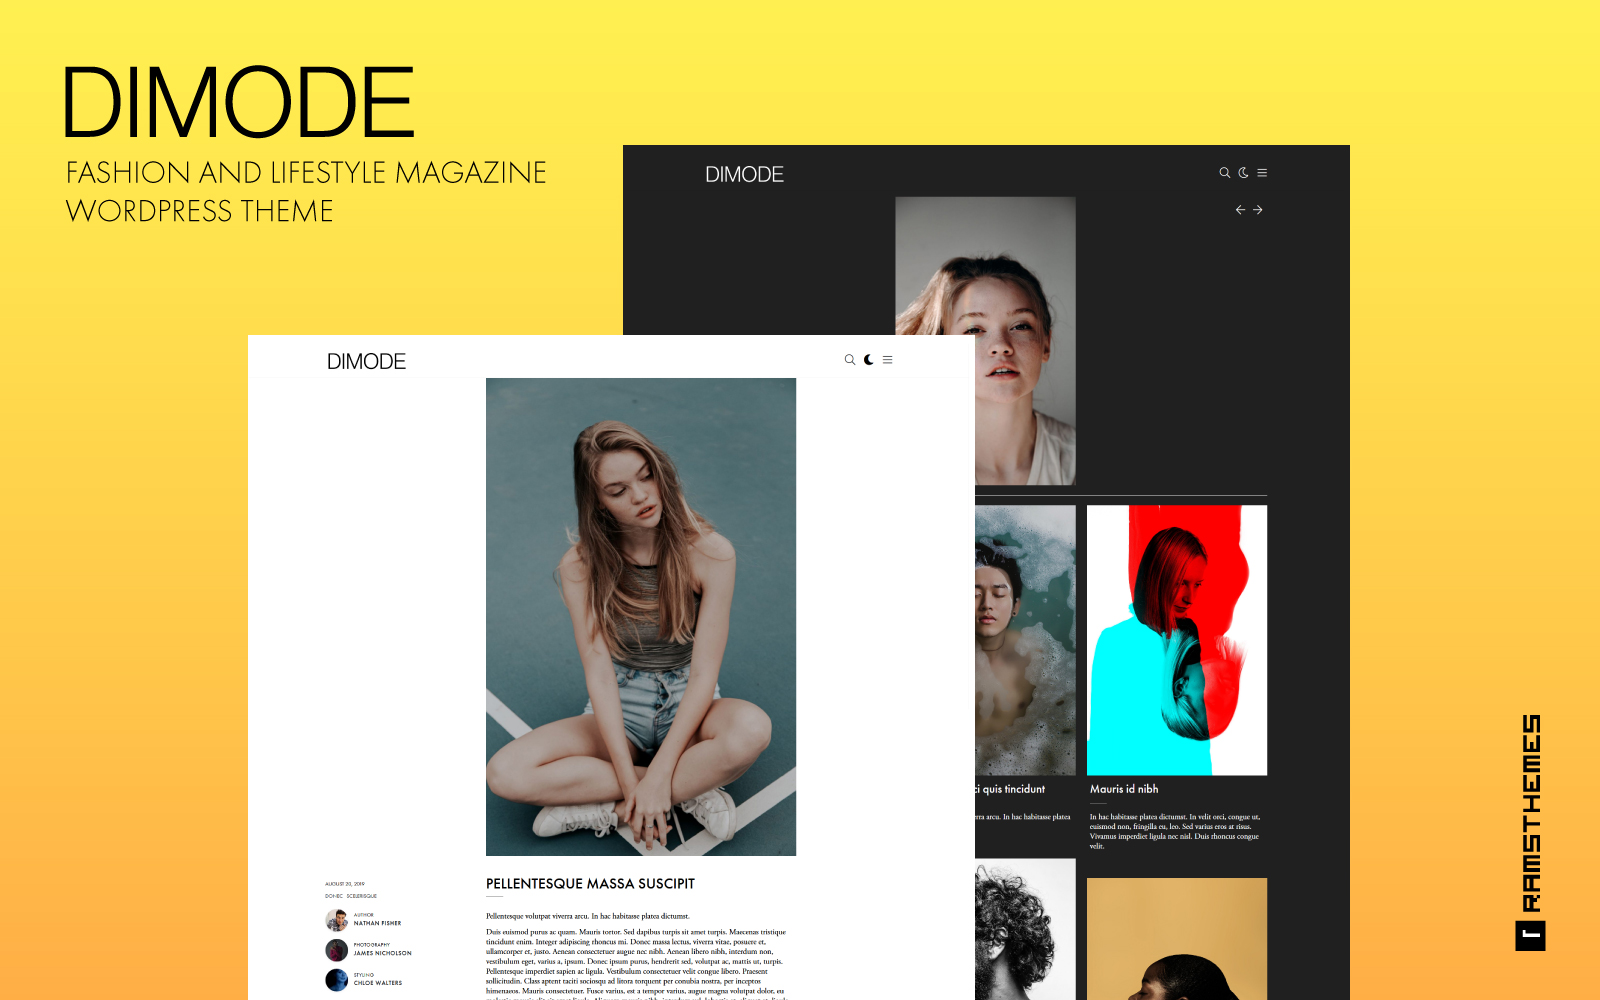 DIMODE - Fashion and Lifestyle Trends Magazine WordPress Theme